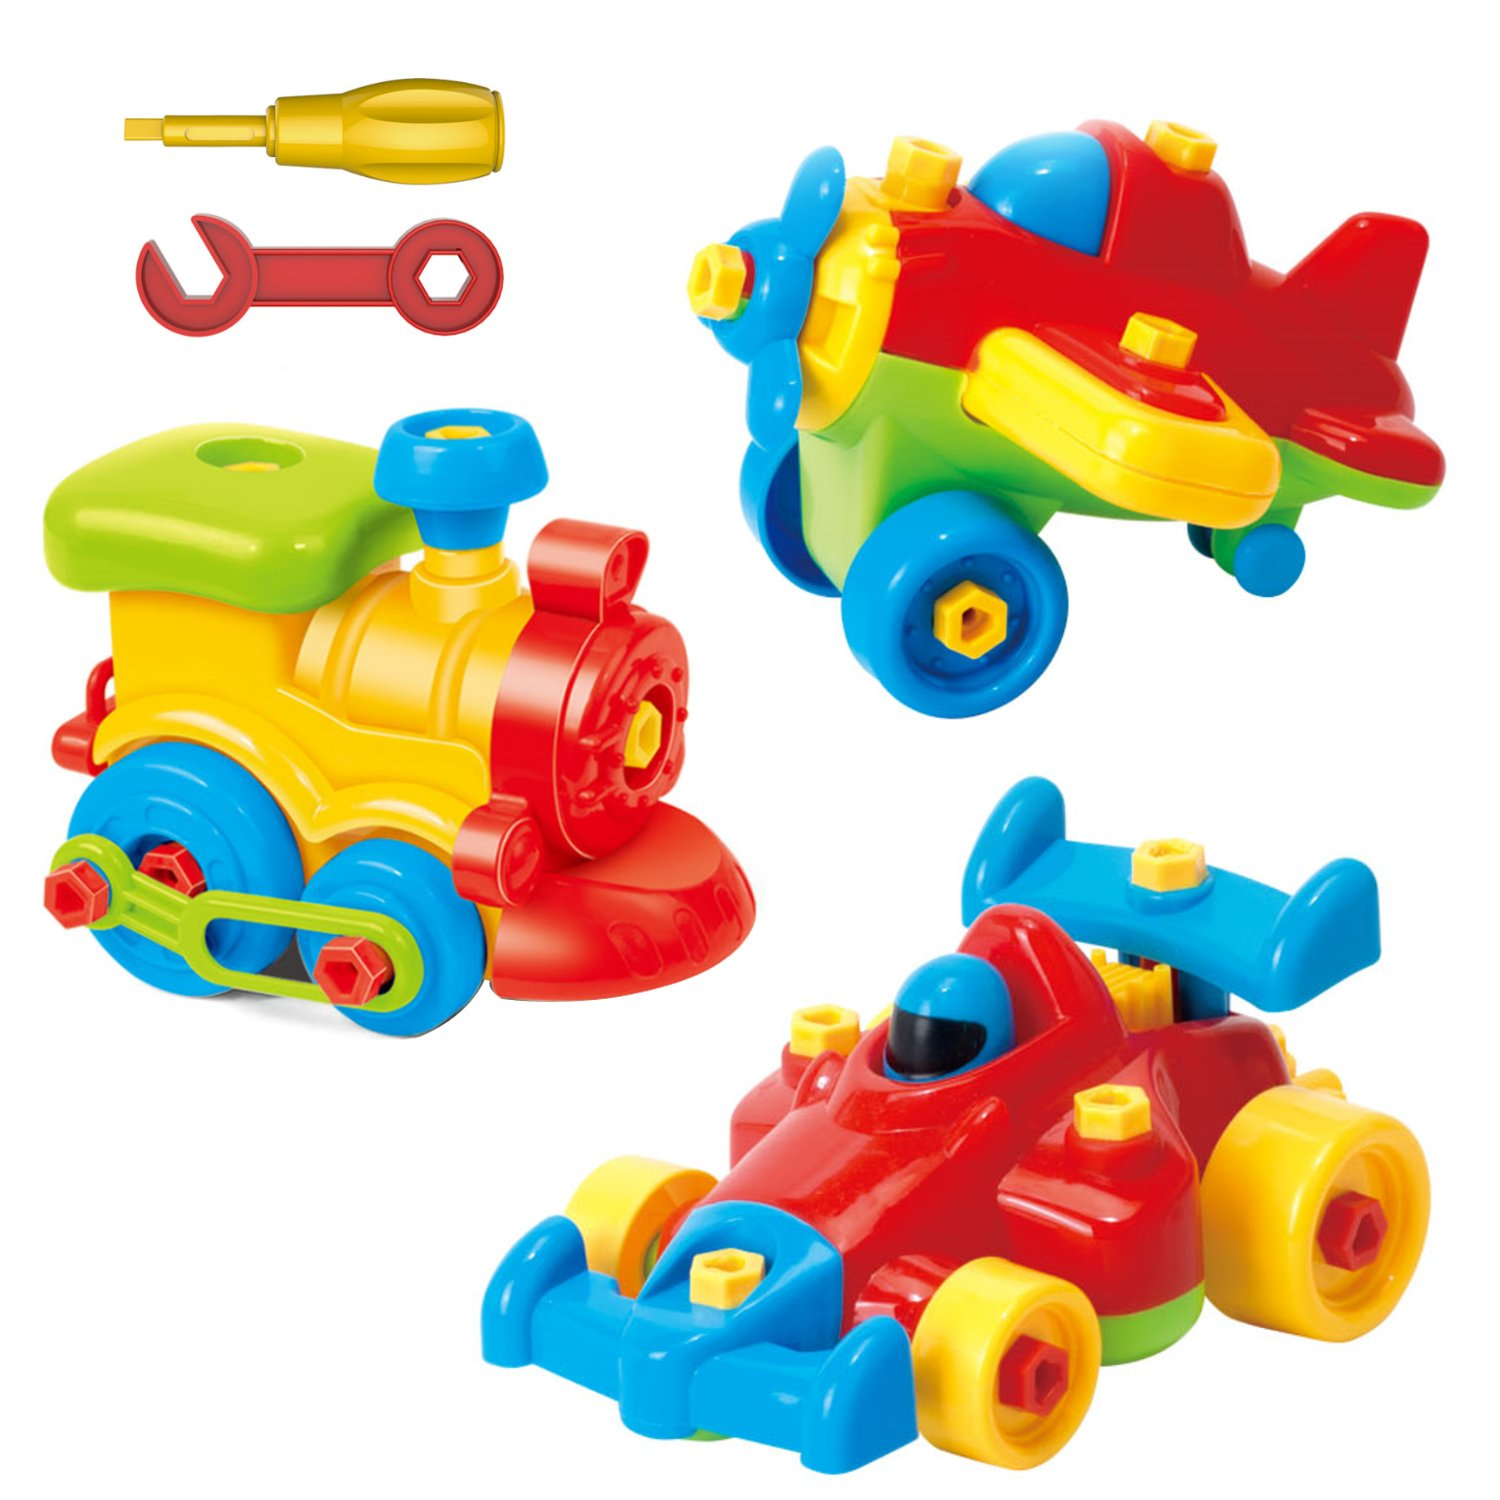 Take Apart Toys Set - Airplane Toy - Train Toy - Racing Car Toy, For Kids - Stem Learning Educational Construction Tool Engineering set Toys For Boys & Girls Ages 3,4,5,6 Years Old And Up, Great GIFT